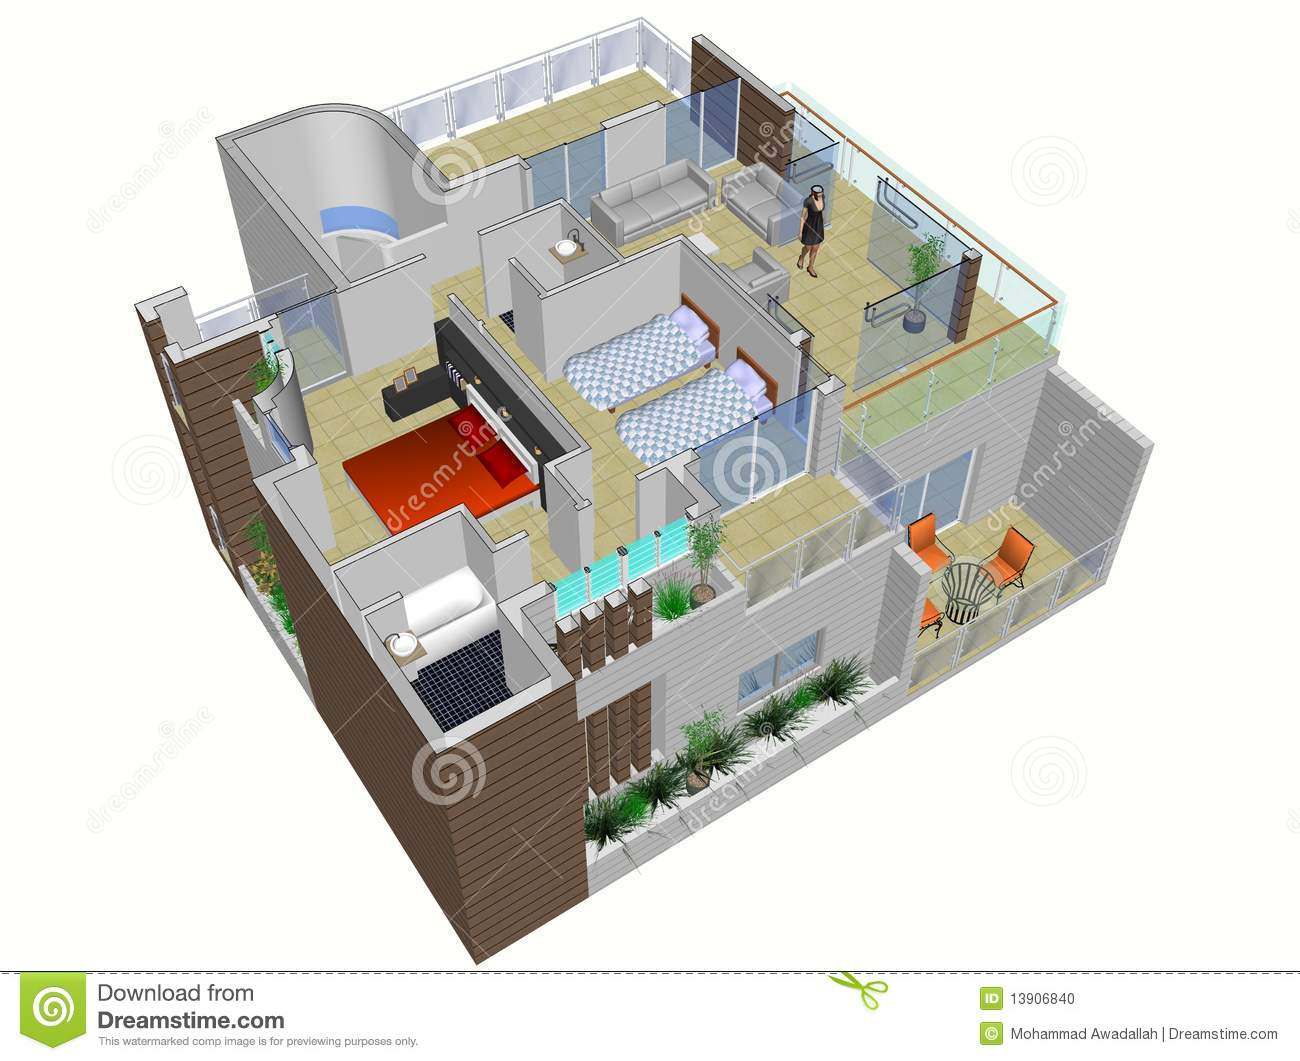 Architectural plan of house stock illustration image for Home building architecture